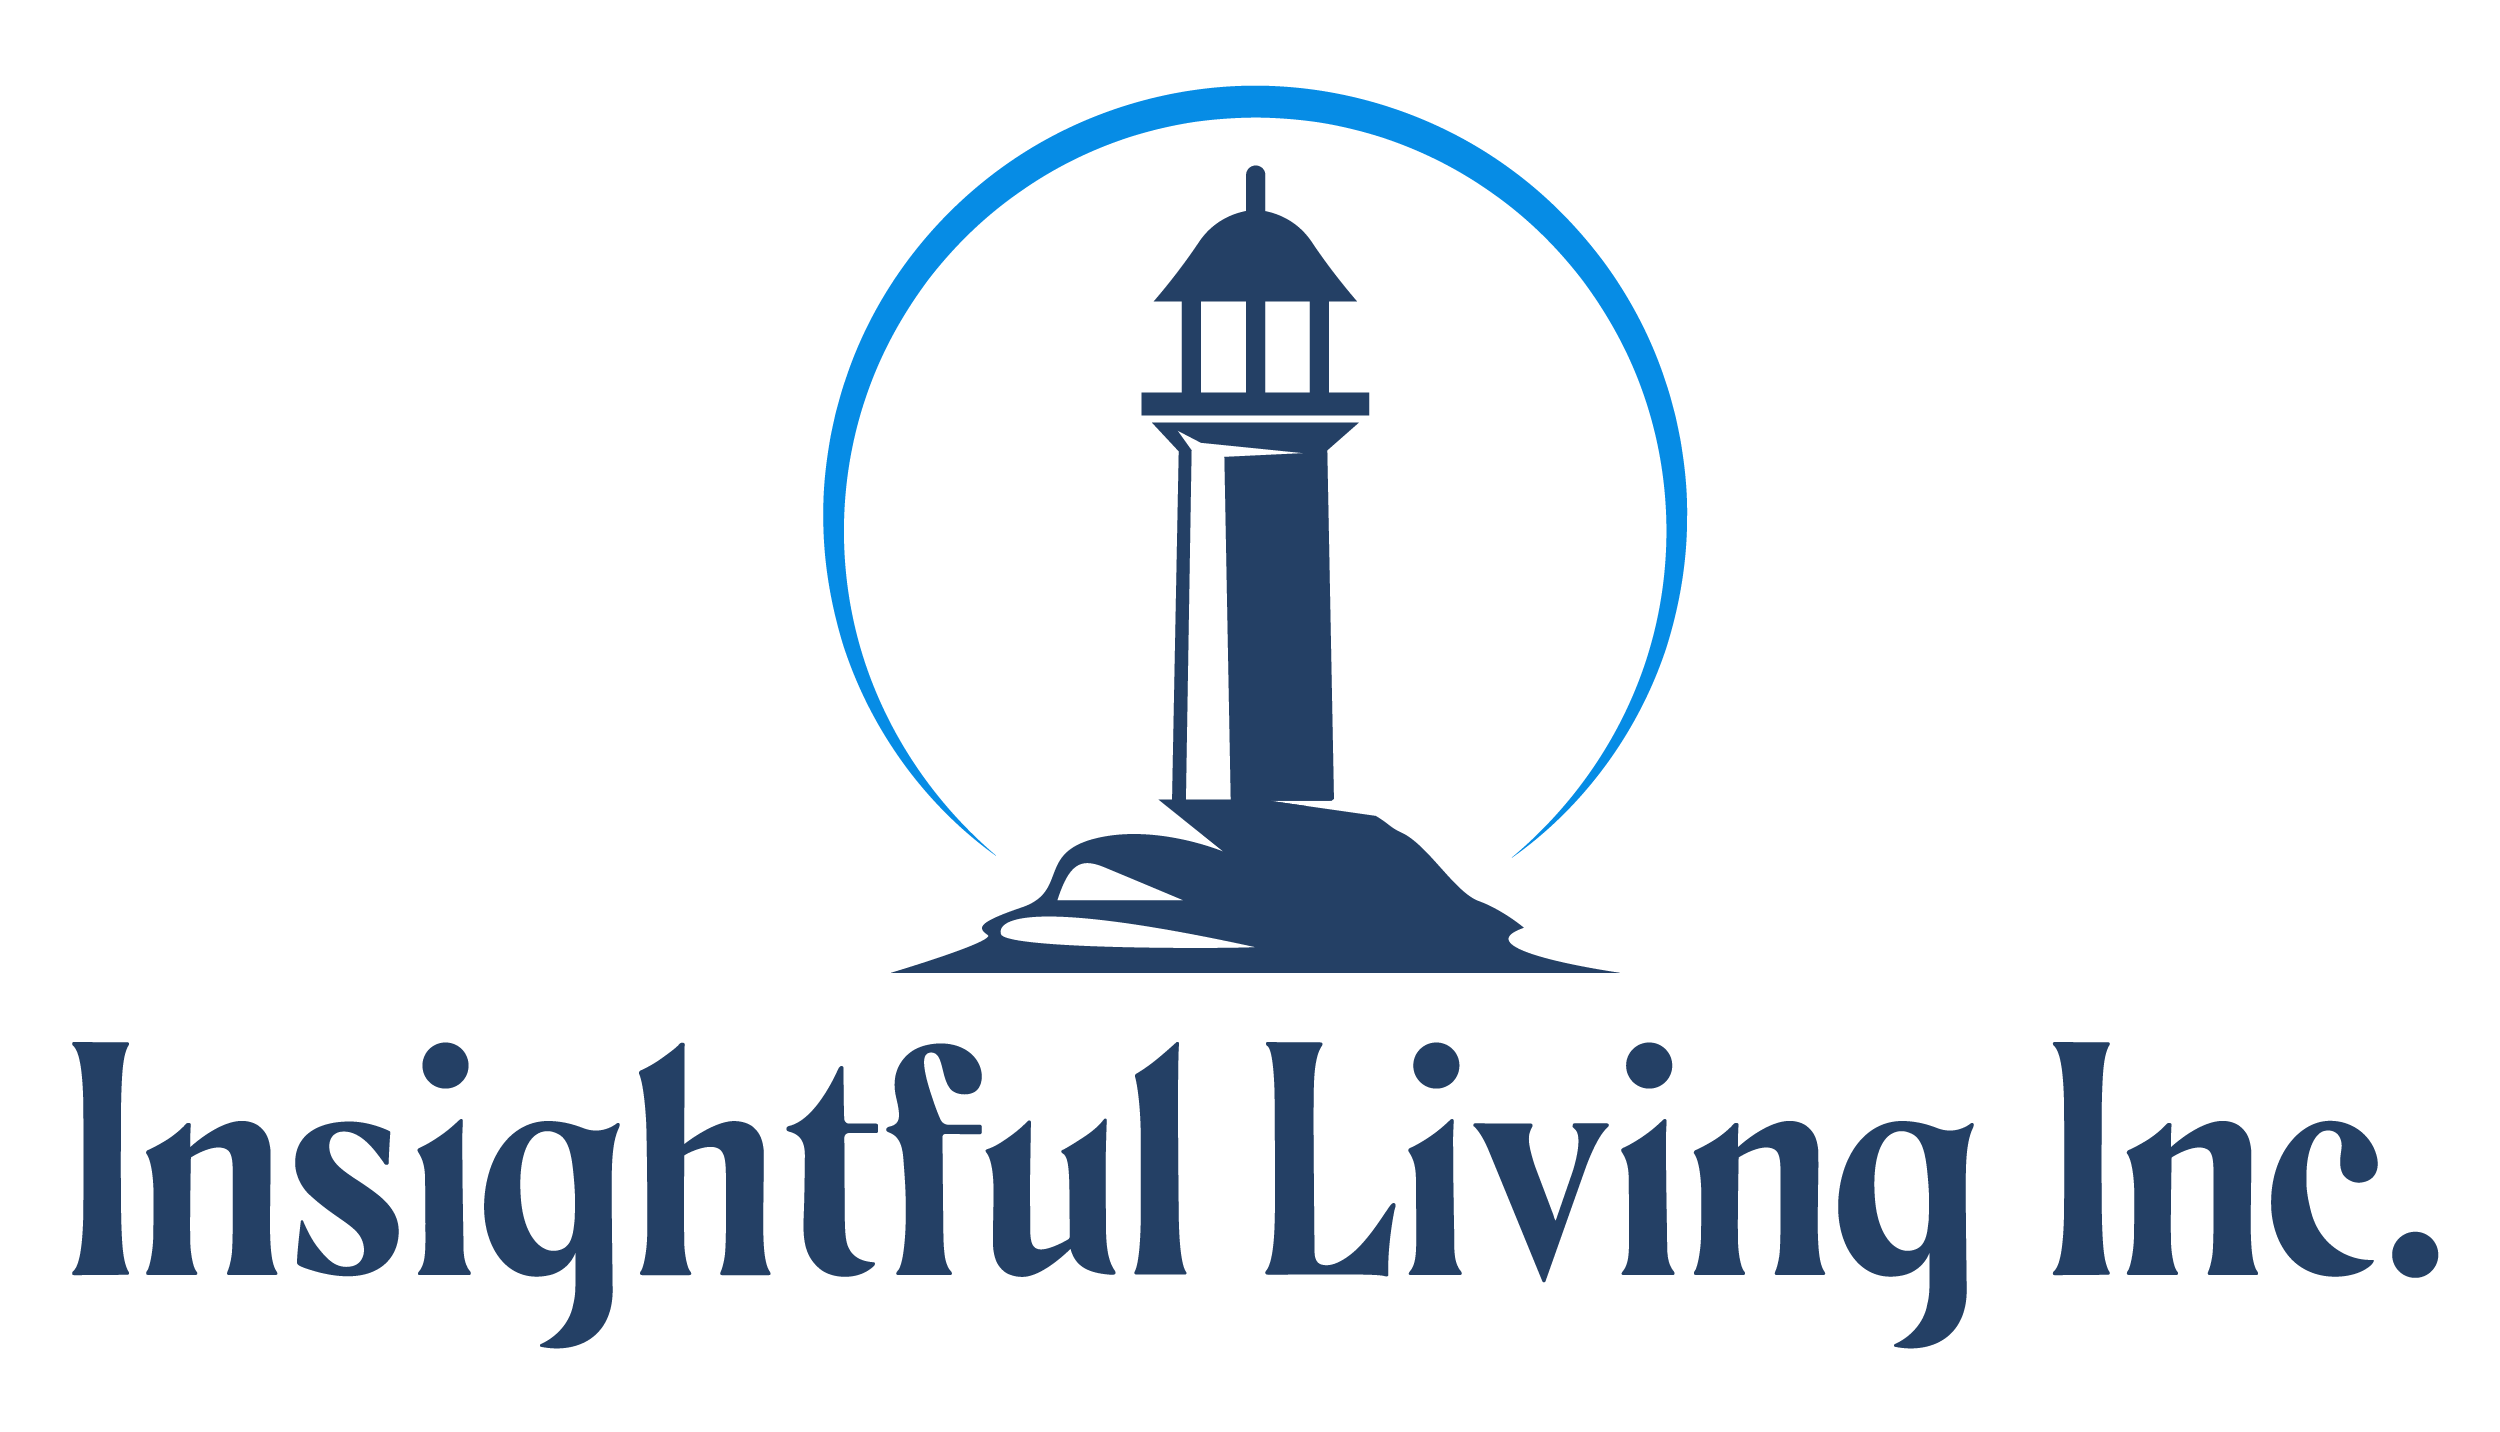 Insightful Living Inc.